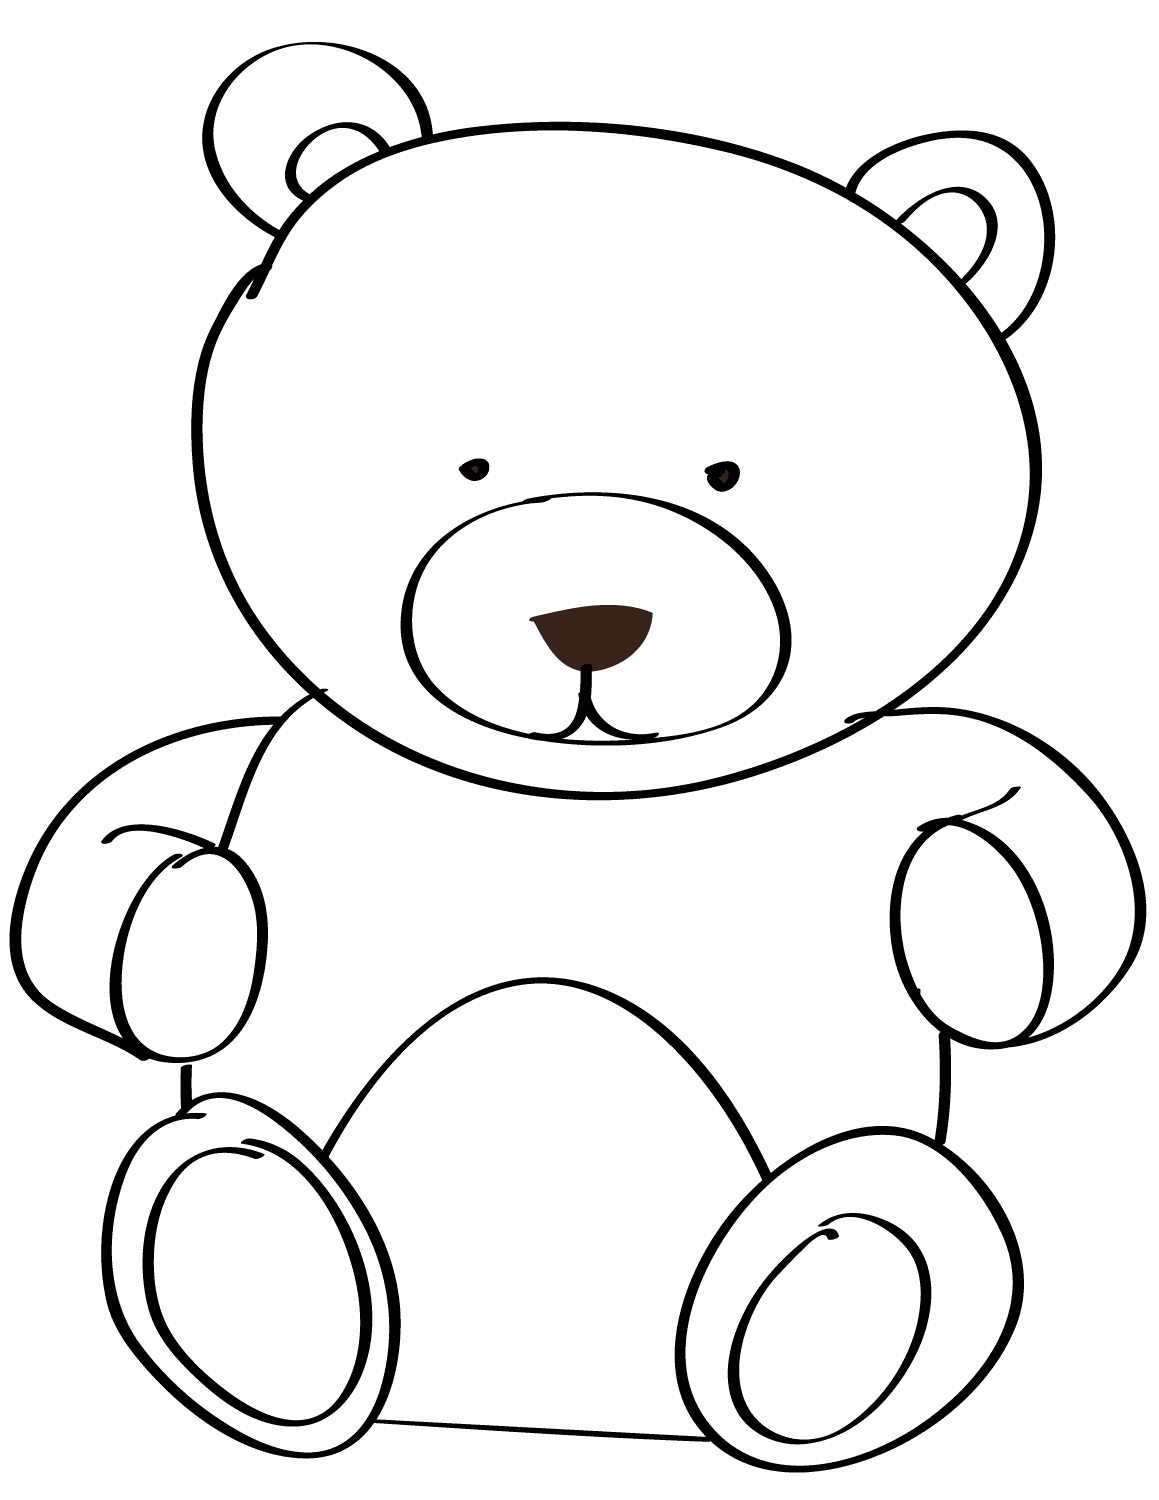 Easy Teddy Bear Coloring Page